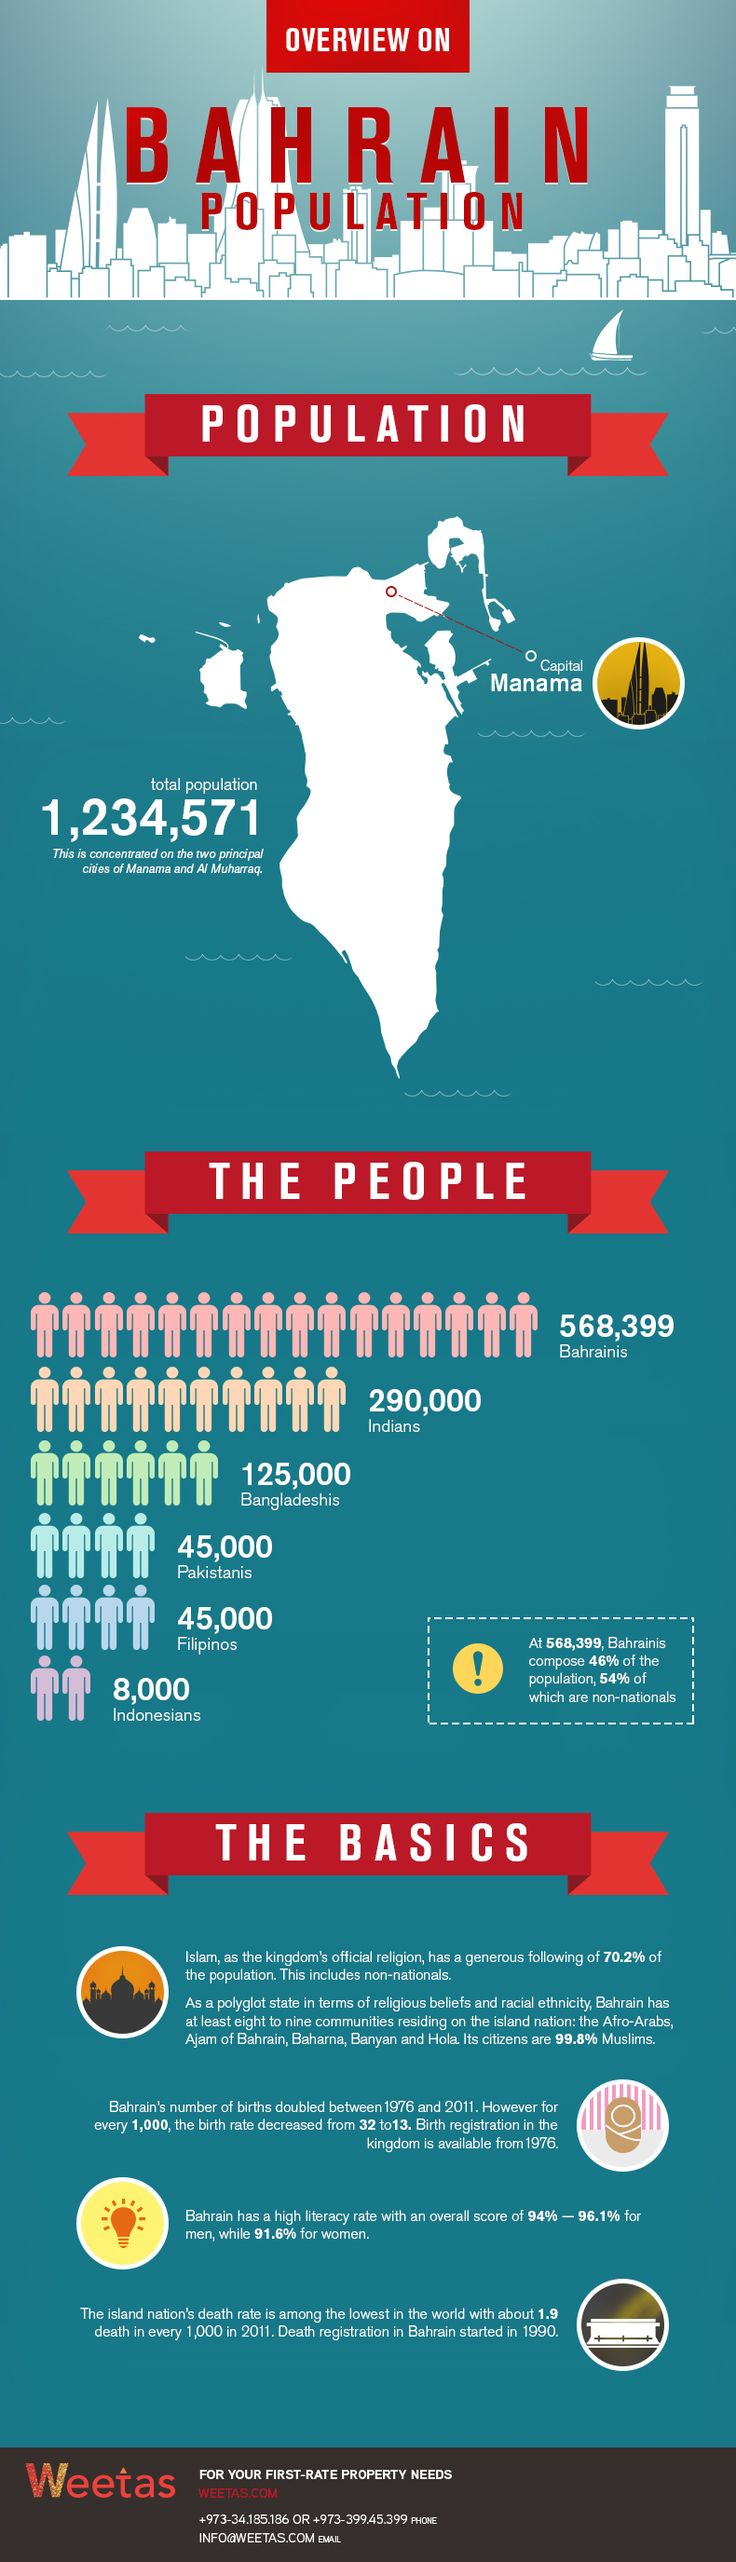 Overview on #Bahrain #Population   Bahrain is an island which is located in the Persian #Gulf and Bahrain Population consist of total number of 1,234,571 https://blog.weetas.com/overview-bahrain-population-infographic/